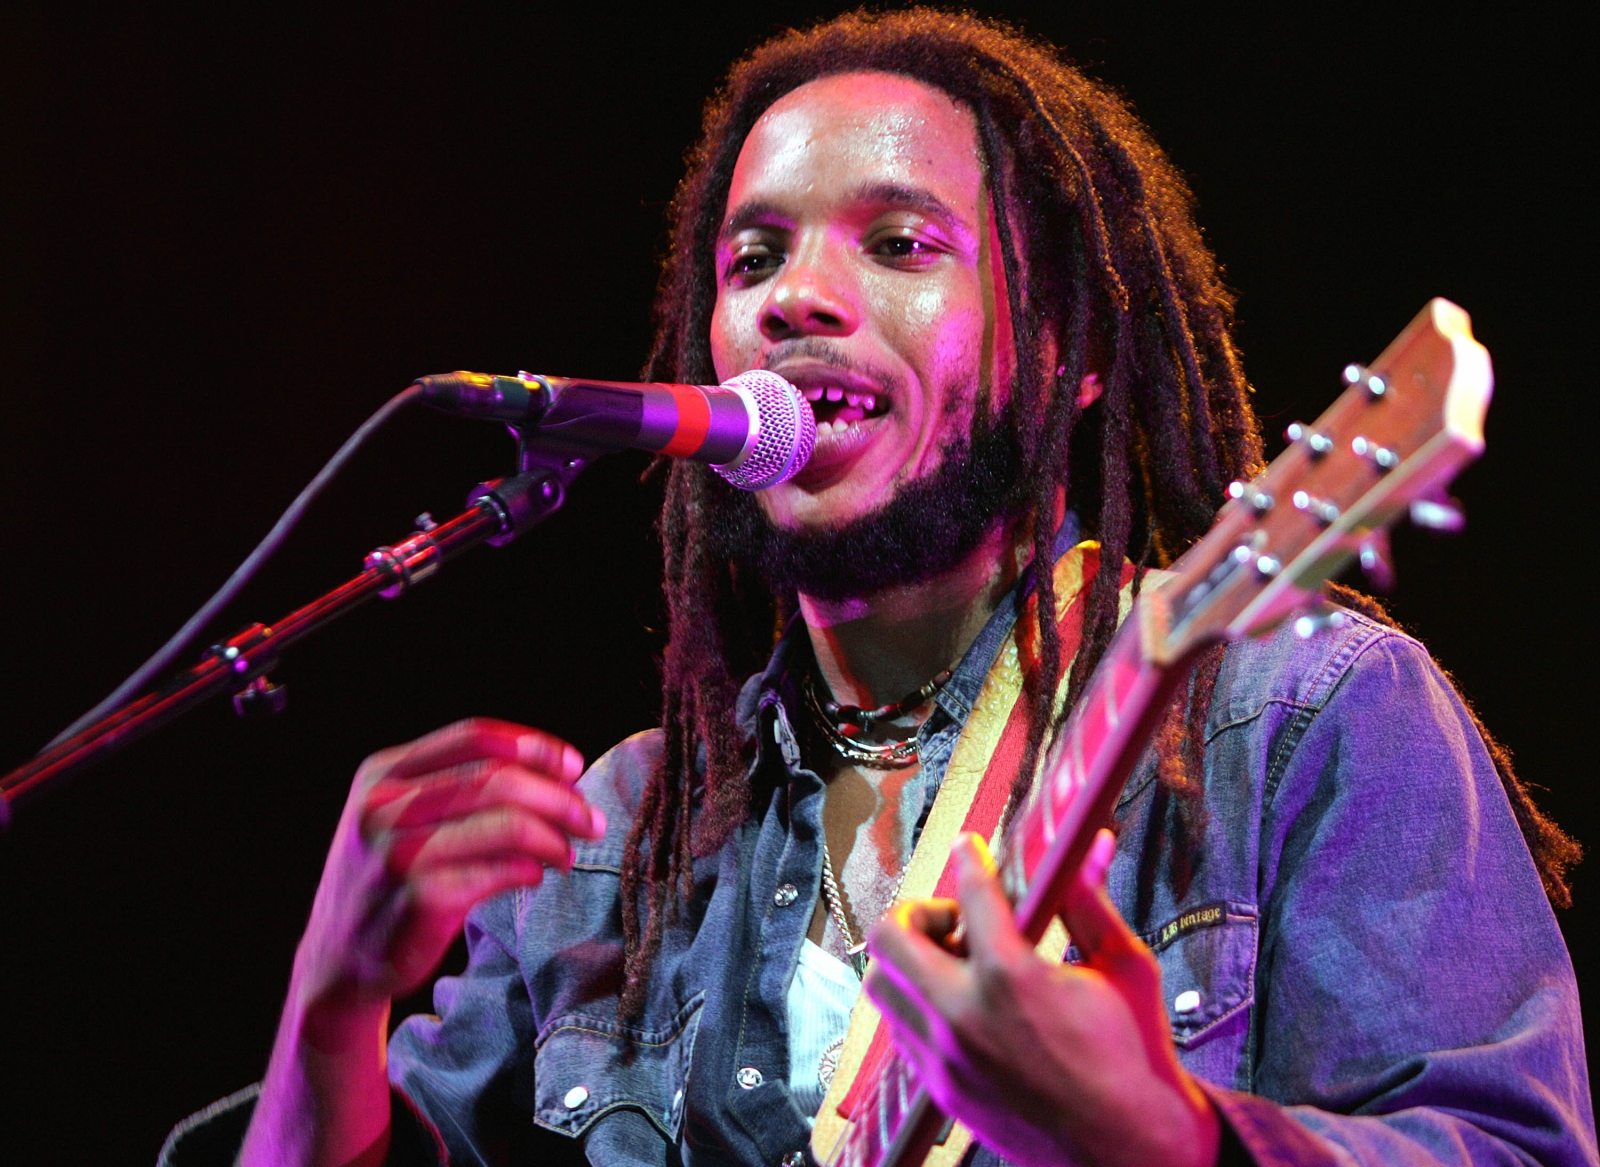 bob marley was serious about the power of music says son stephen